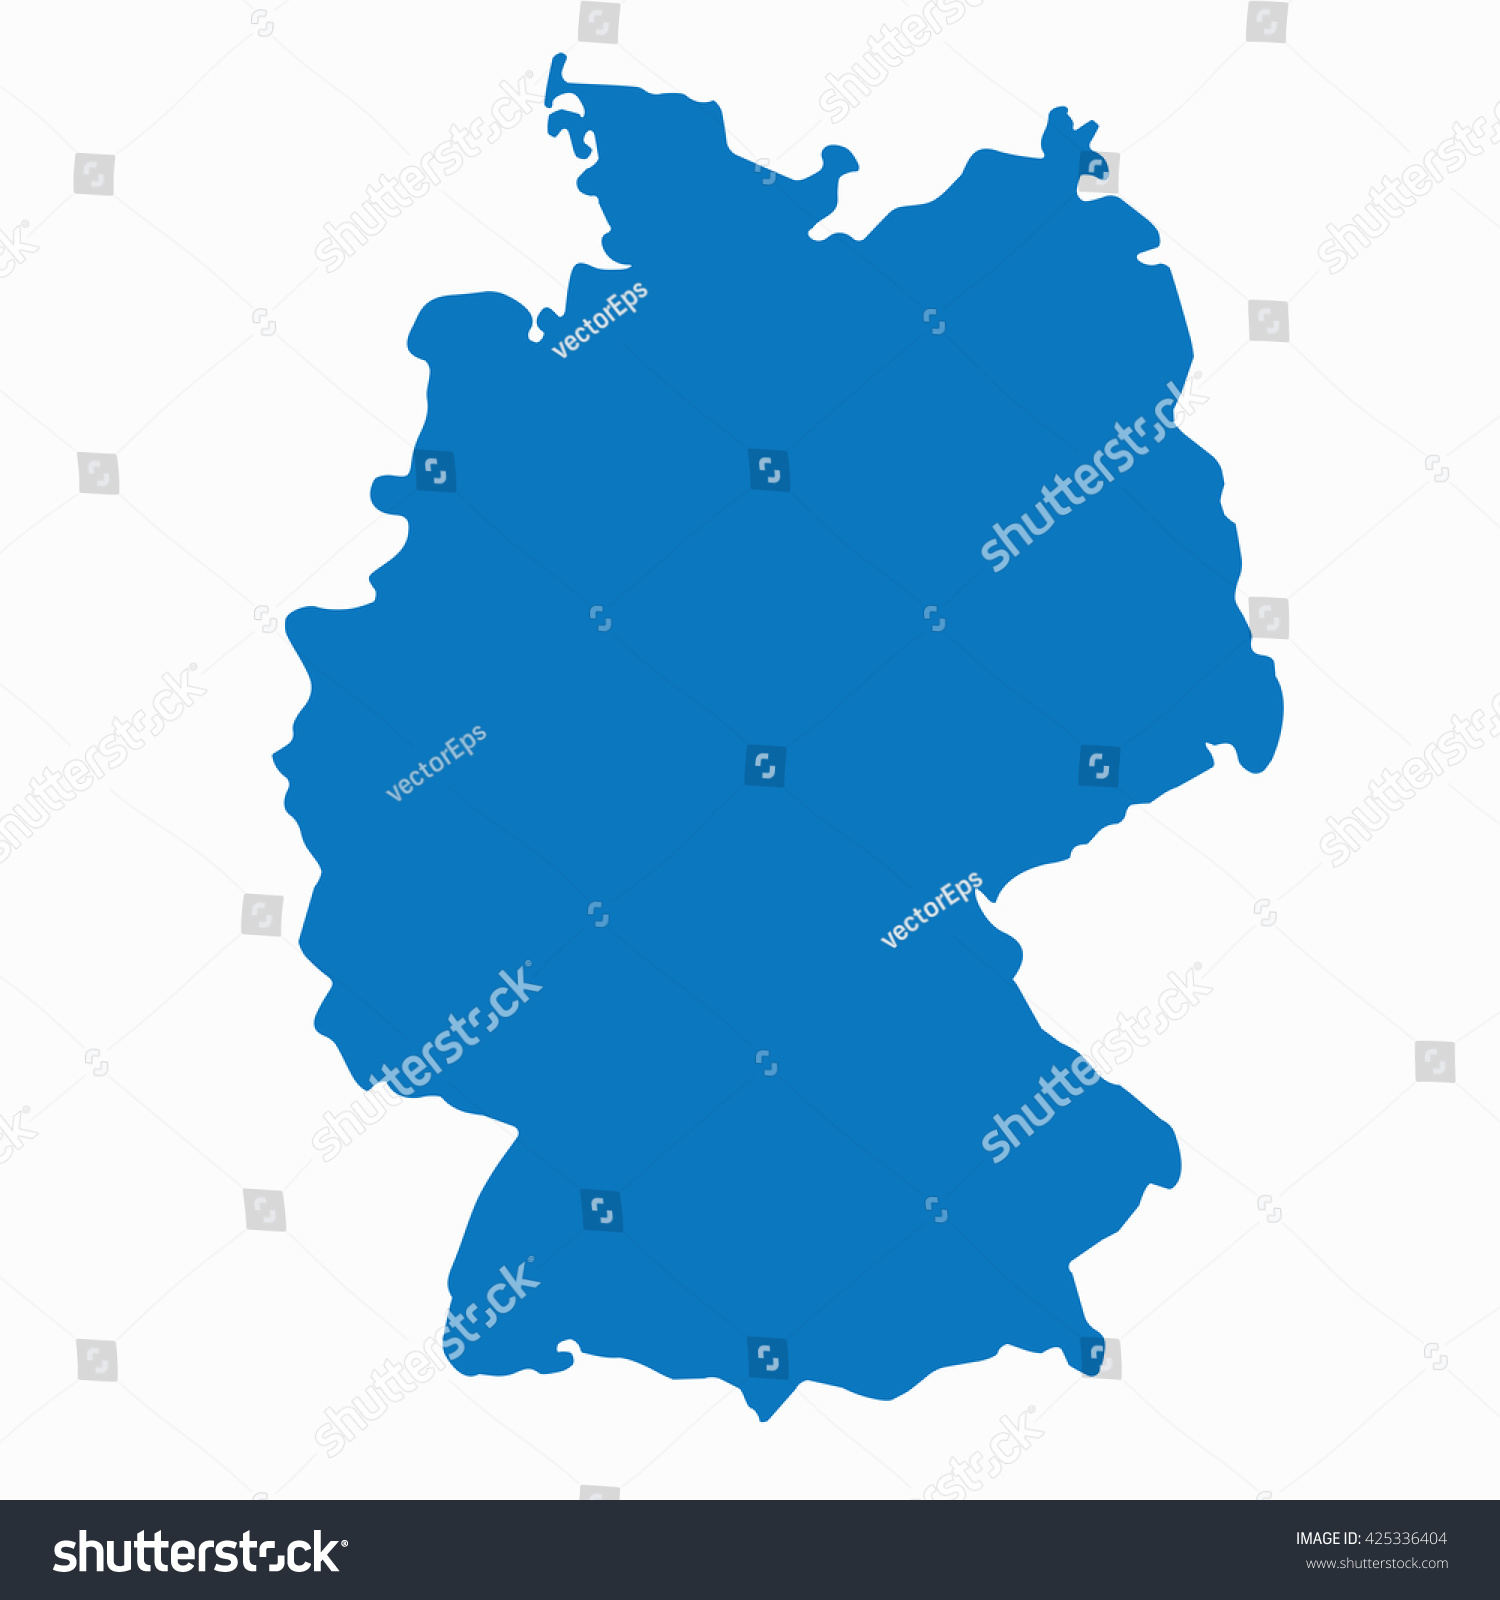 Blue germany map vector european german vectores en stock 425336404 blue germany map vector european german vectores en stock 425336404 shutterstock gumiabroncs Choice Image